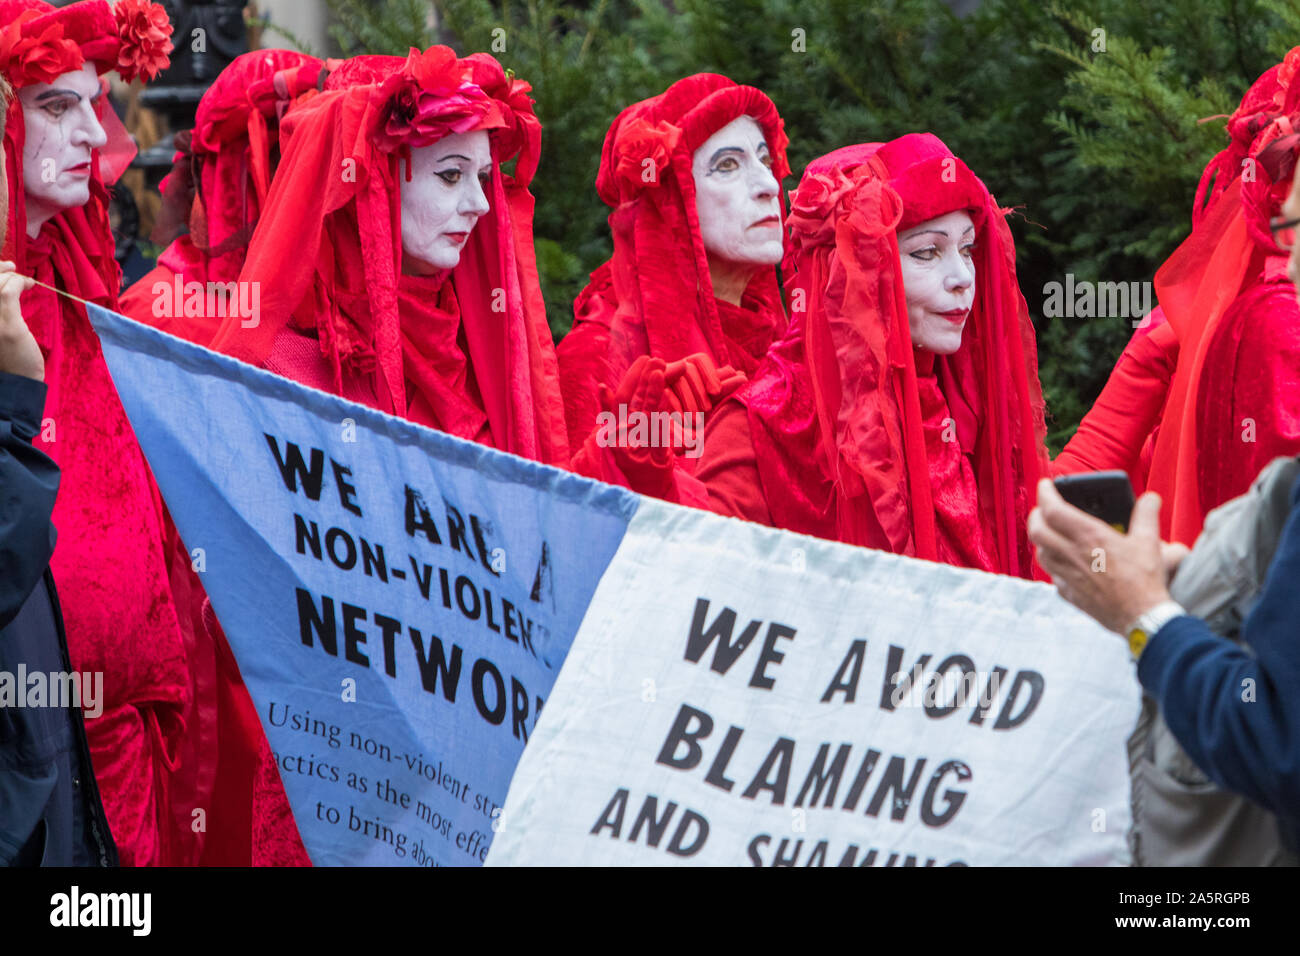 Extinction Rebellion Climate Change Protests London October 2019 Stock Photo